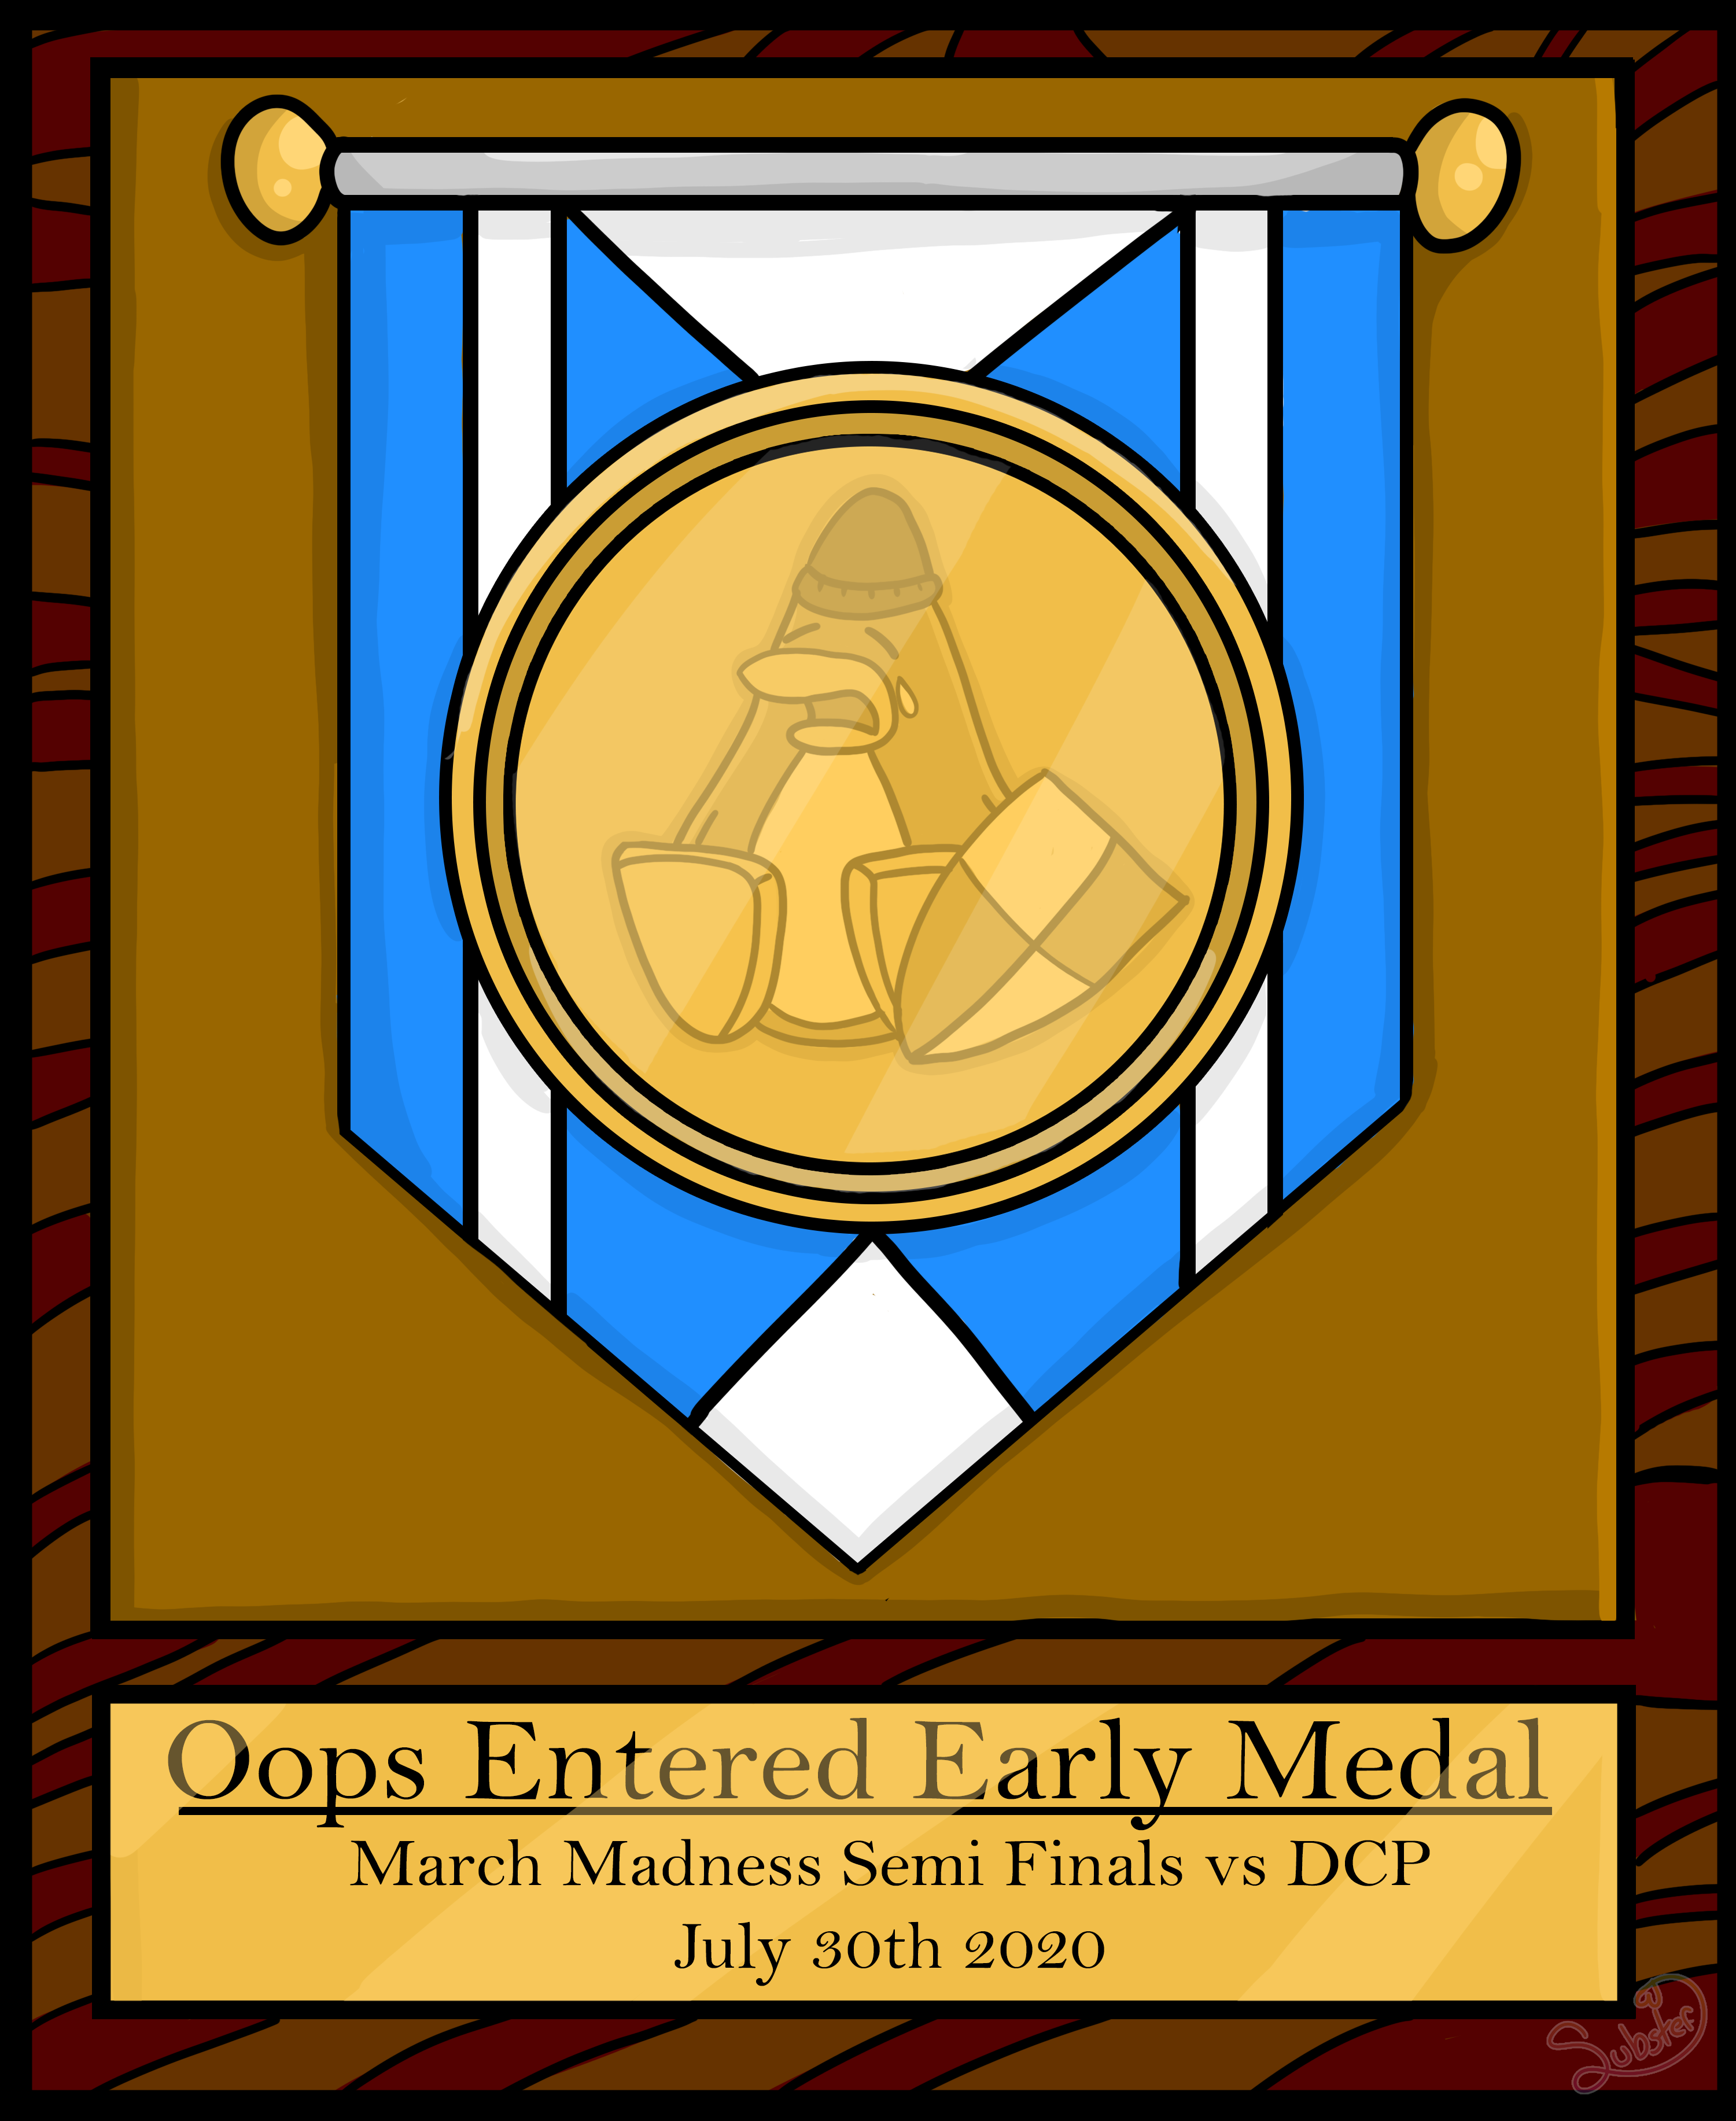 Oops_entered_early_medal